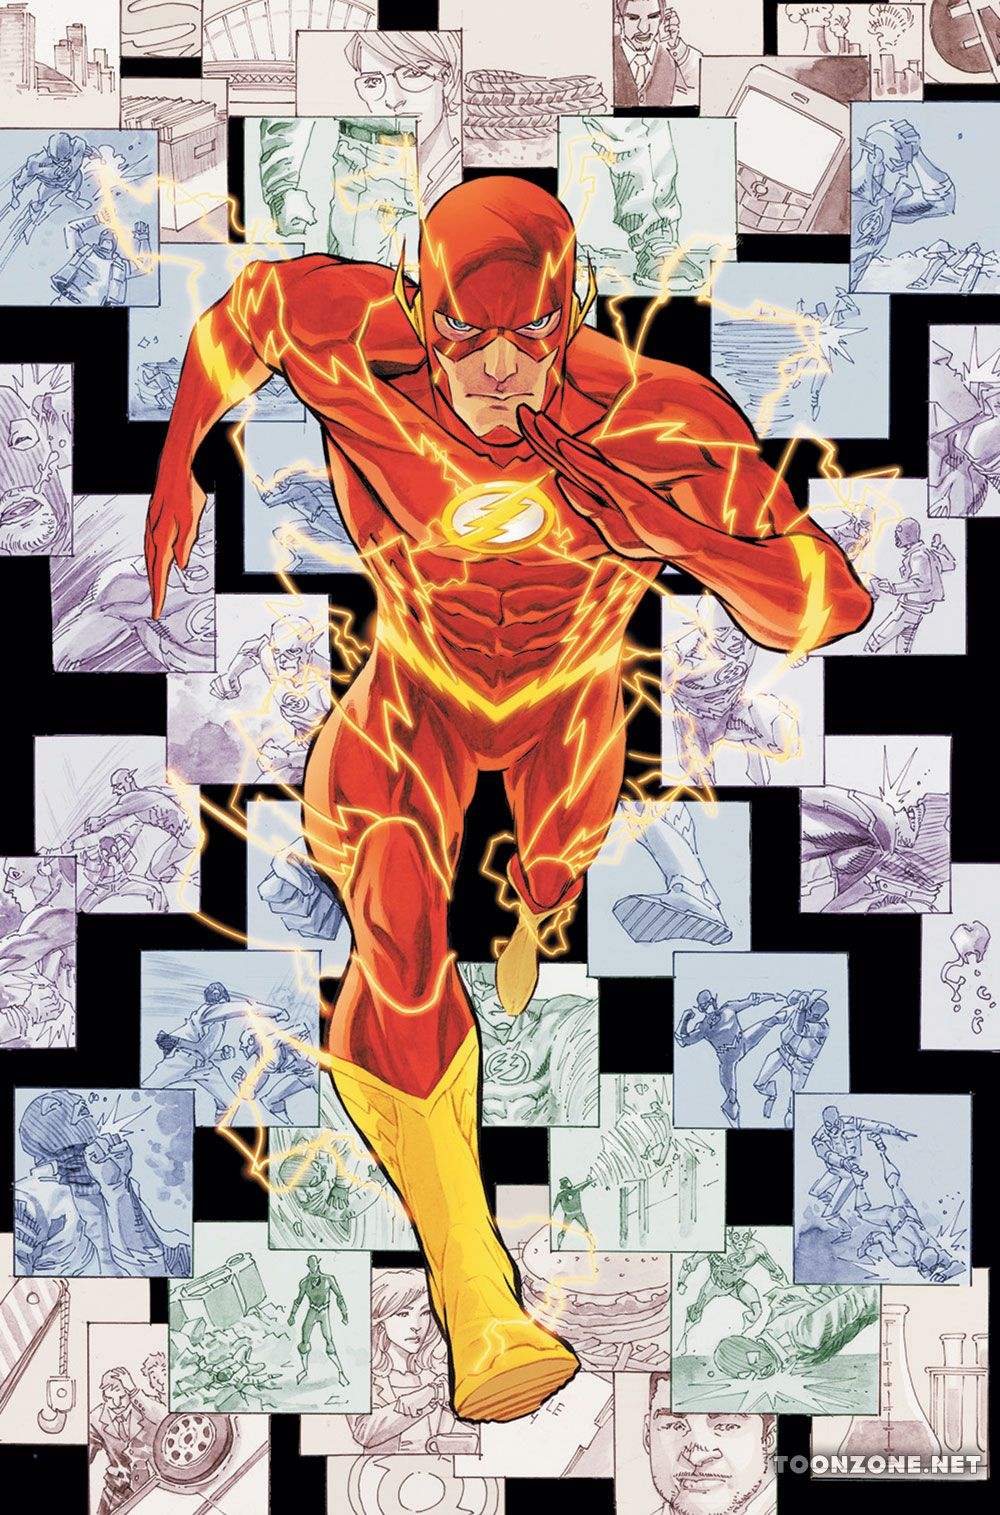 THE FLASH #11